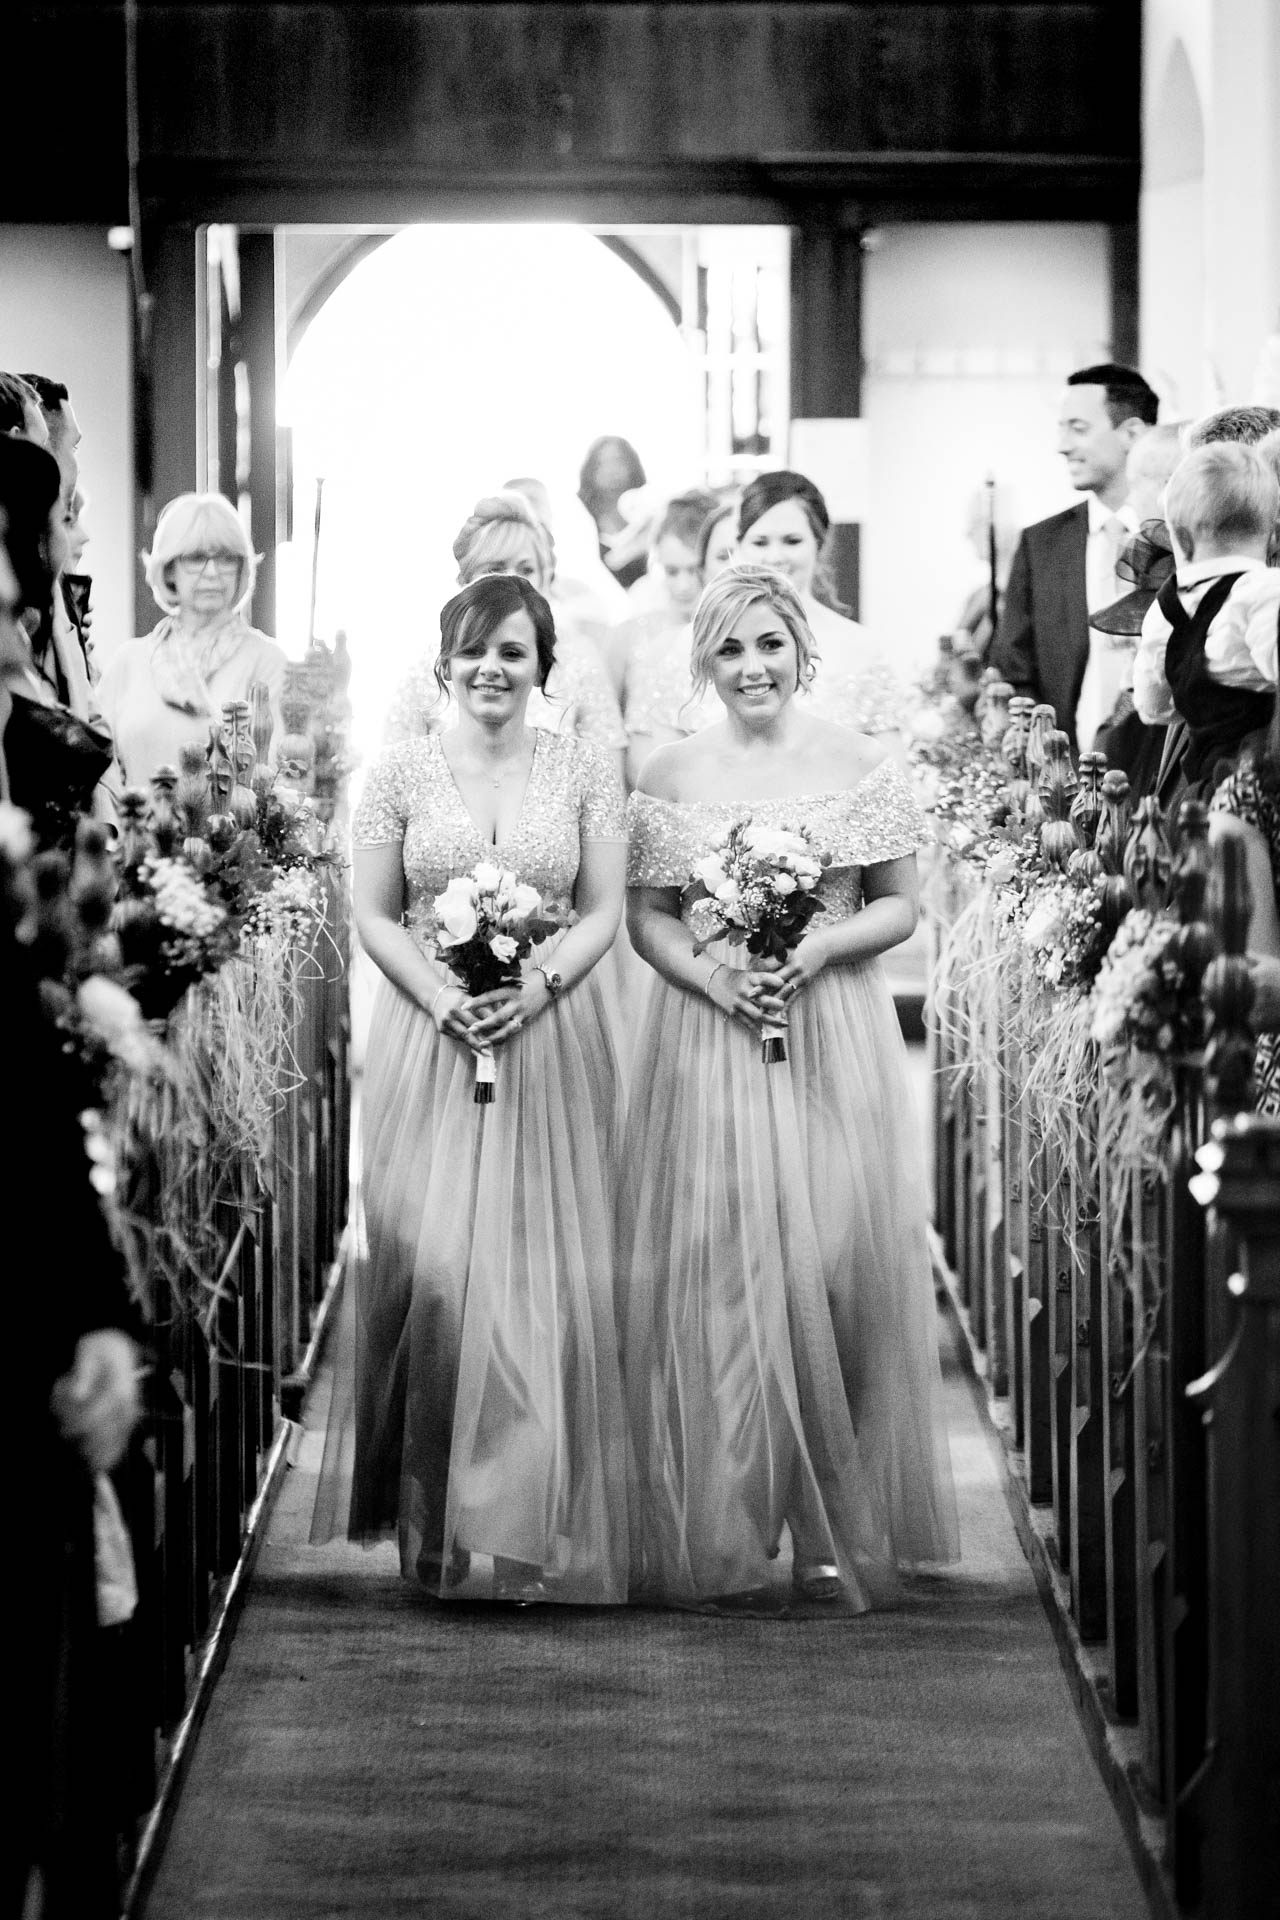 Wedding photography St Clements Church Leigh-on-Sea Essex